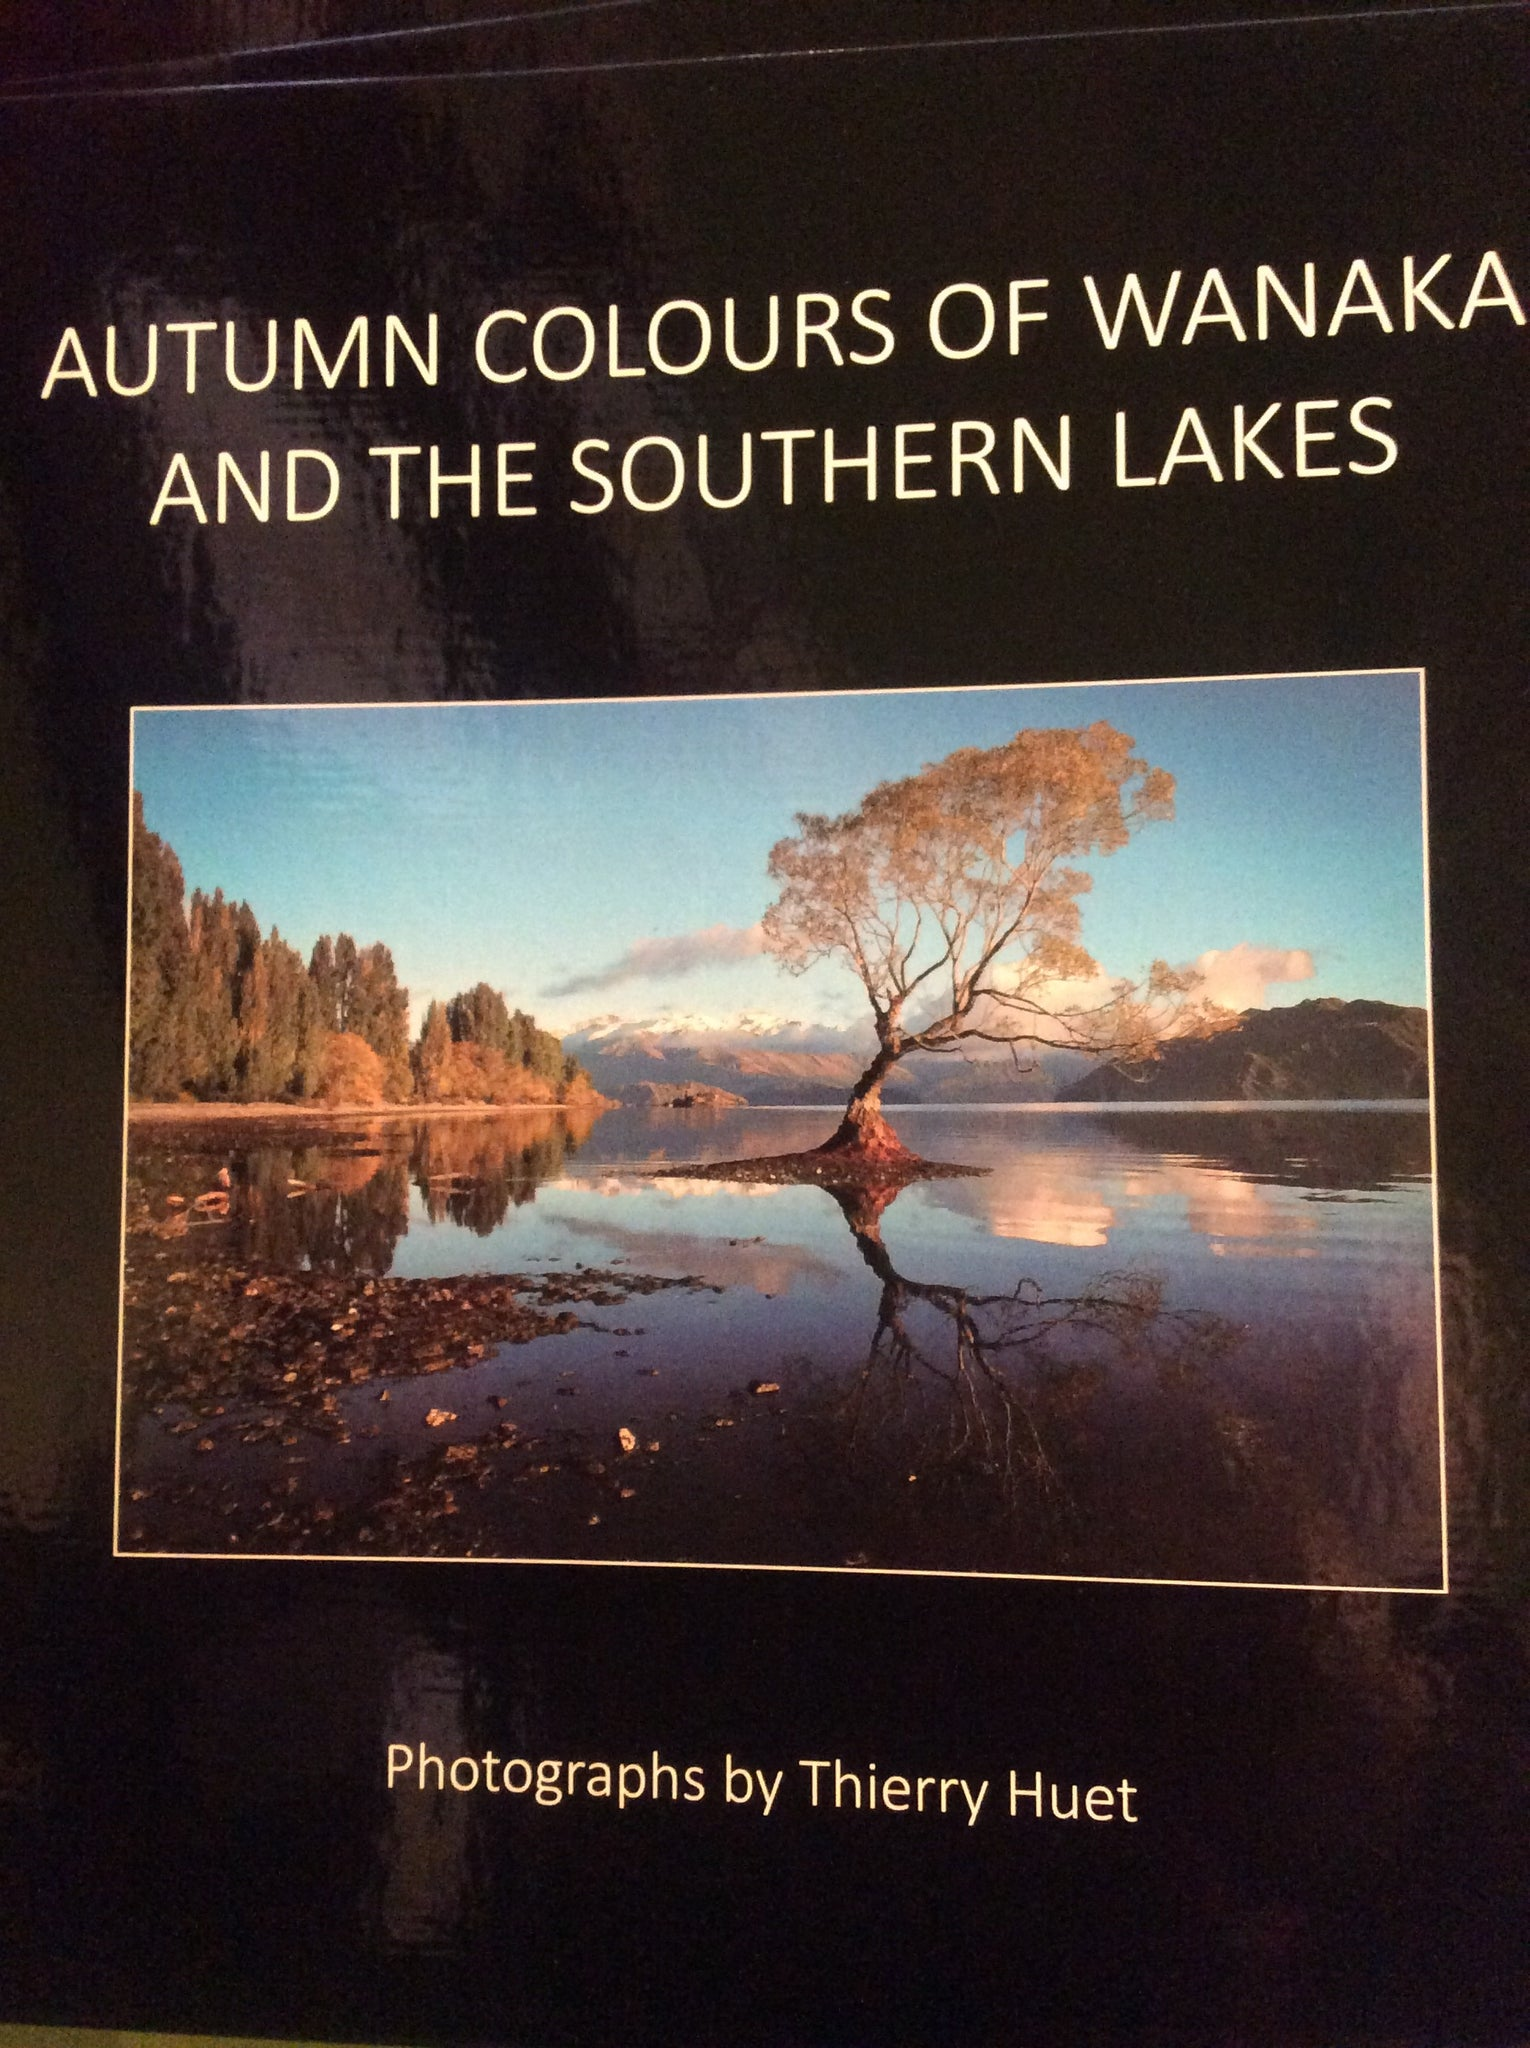 Autumn Colour of Wanaka - Thierry Huet